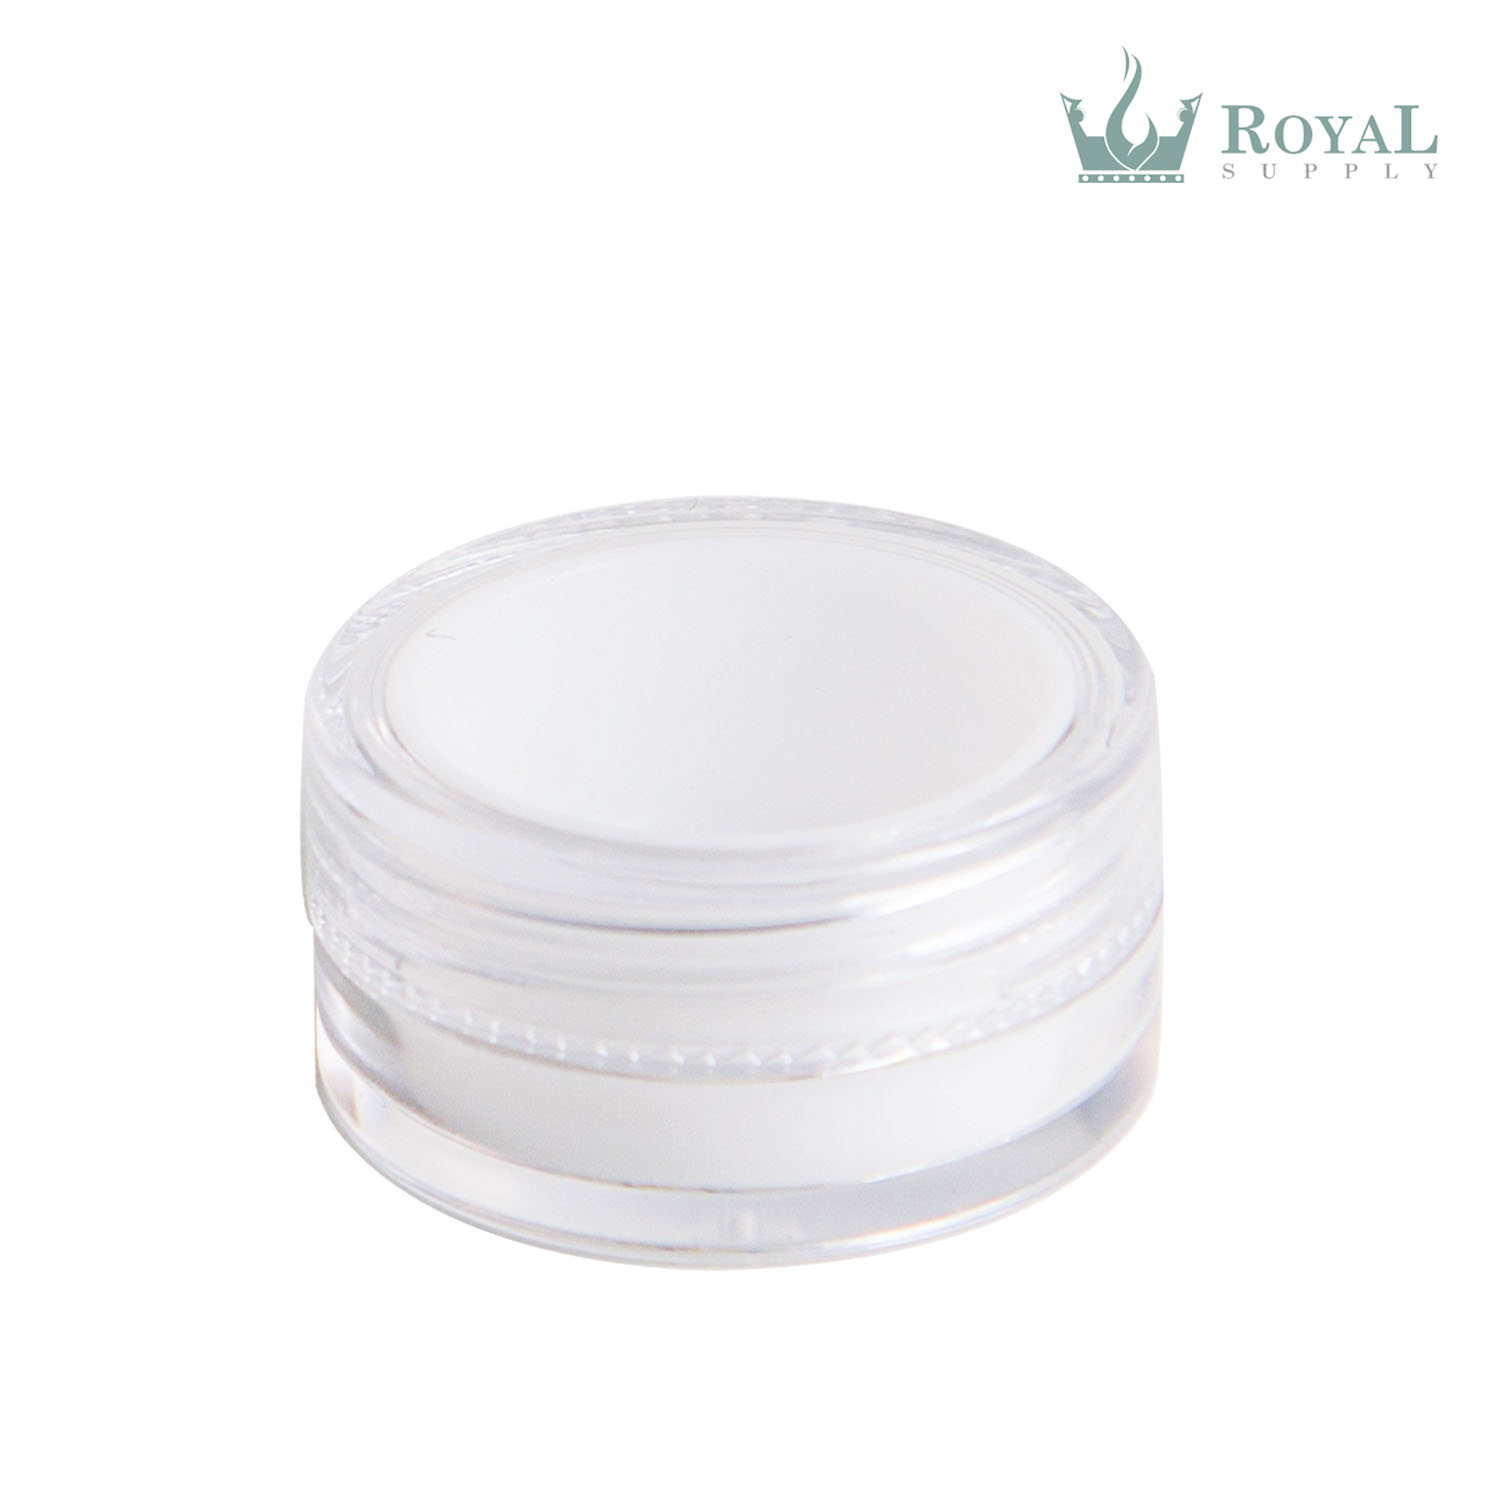 5 ml Plastic Concentrate Container with Silicone Insert